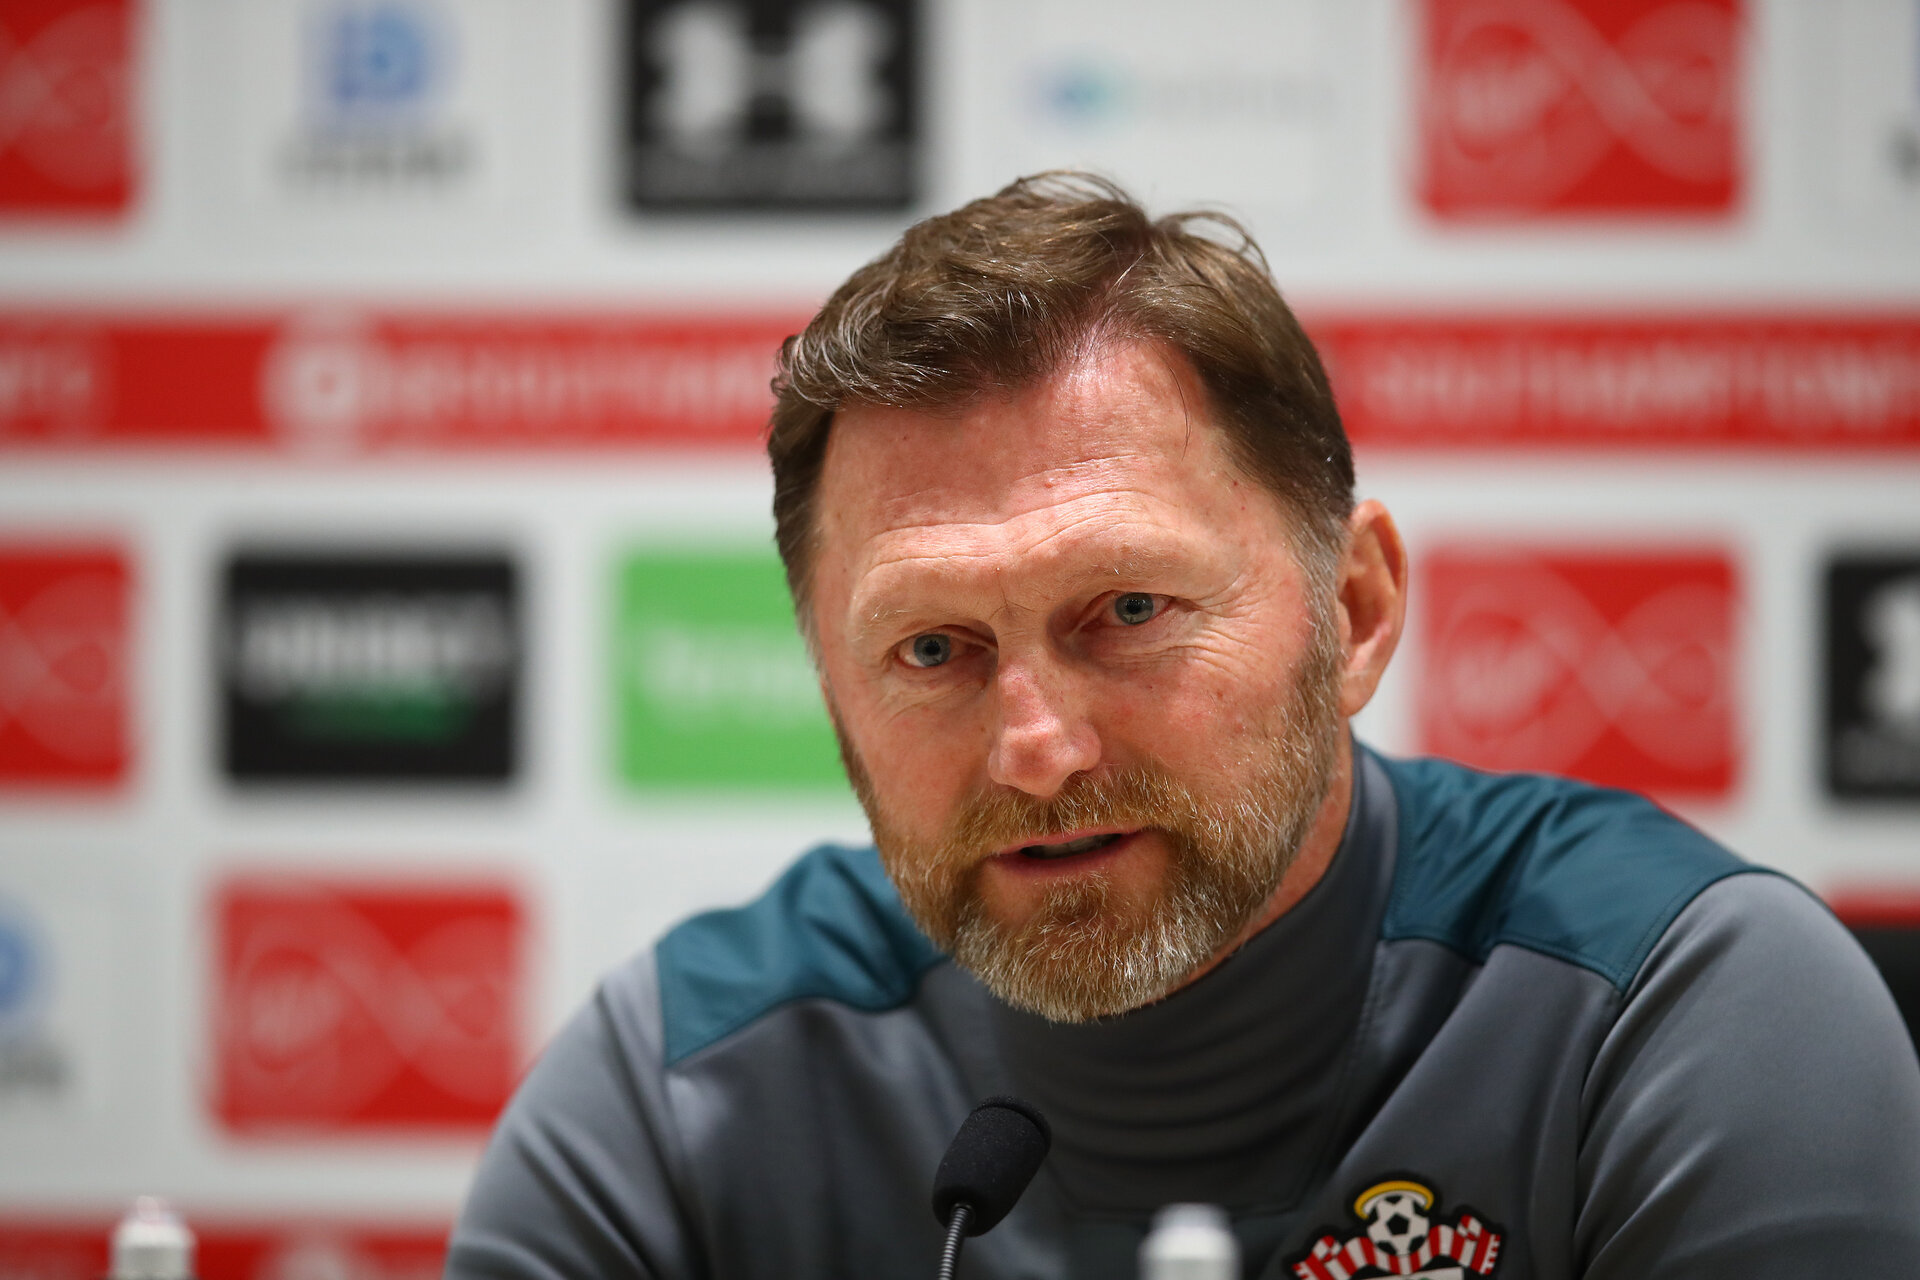 SOUTHAMPTON, ENGLAND - JANUARY 30: Manager Ralph Hasenhuttl during a Southampton FC press conference at the Staplewood Campus on January 30, 2020 in Southampton, England. (Photo by Matt Watson/Southampton FC via Getty Images)